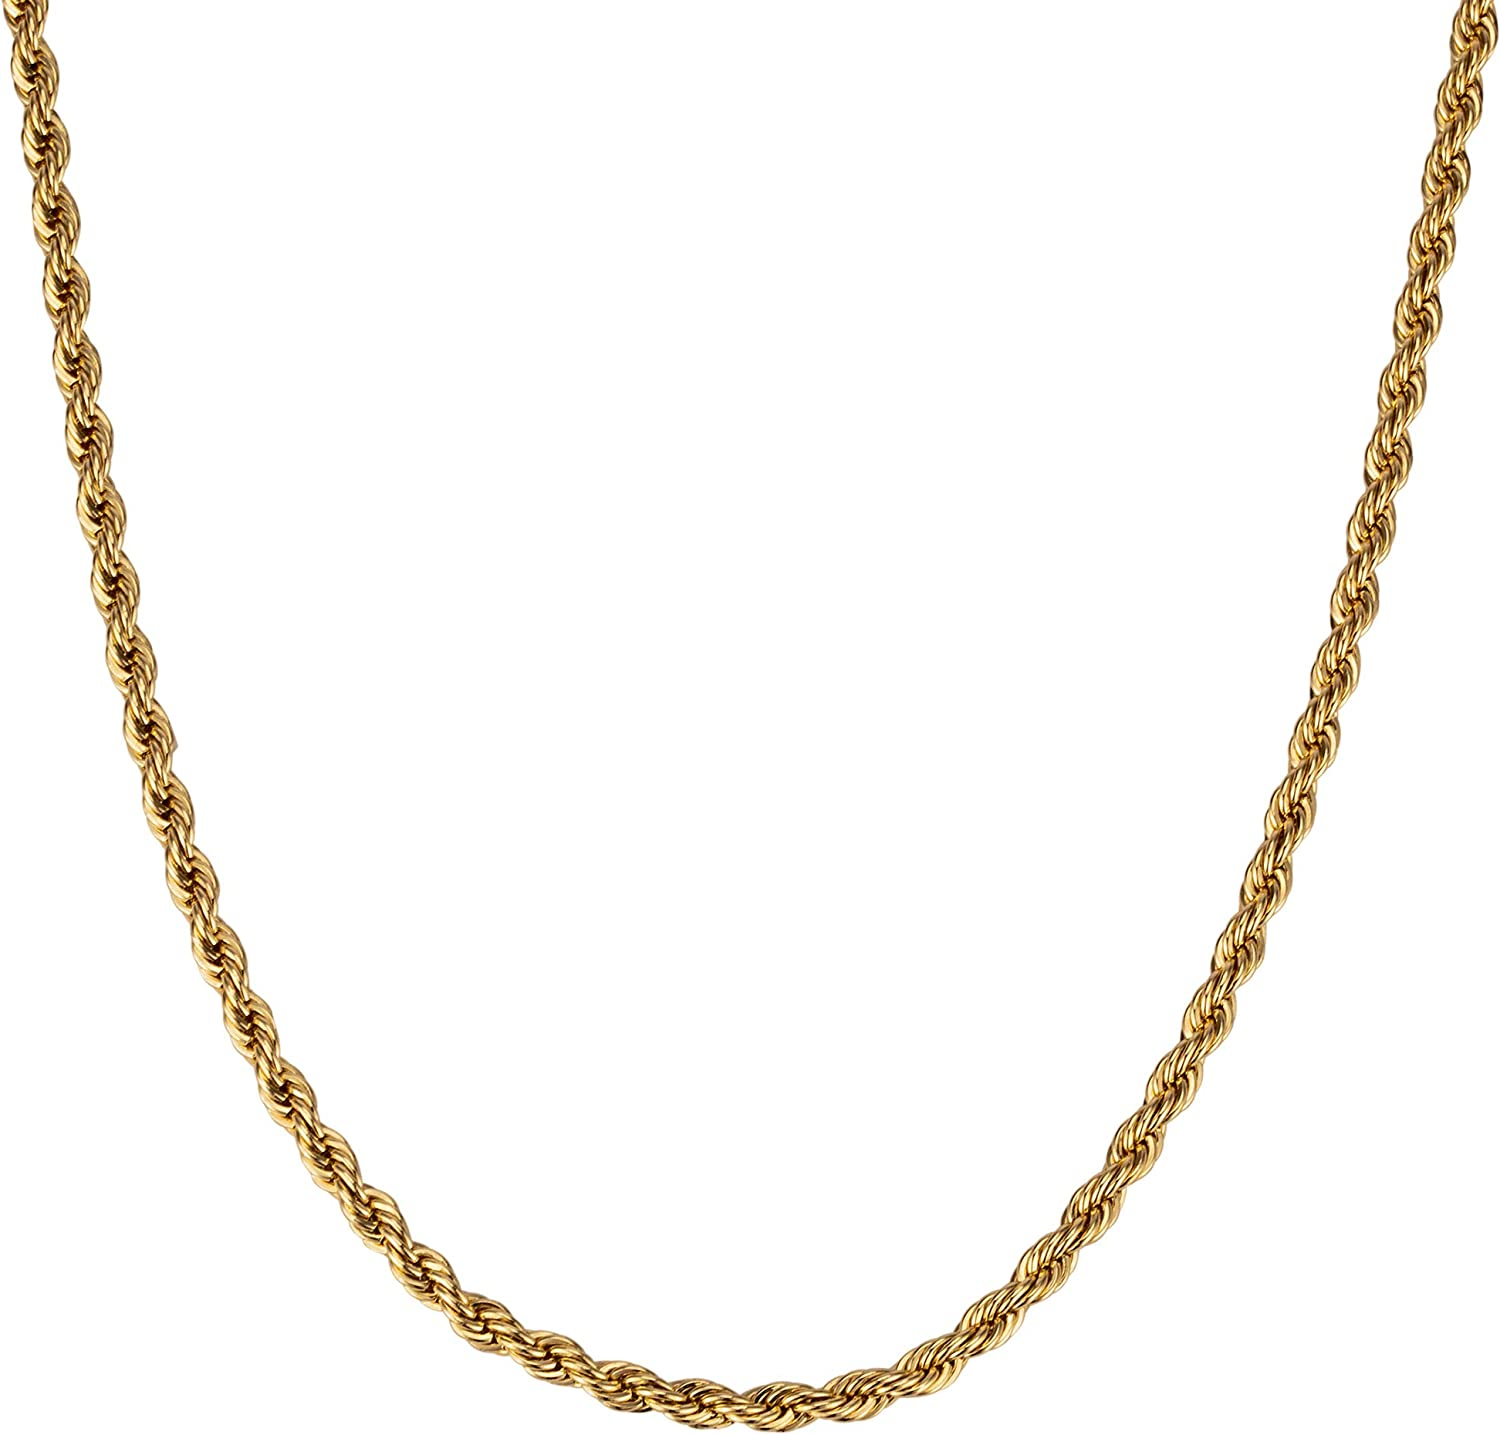 HERMOLANTE 4mm Rope Chain Necklace 18k Real Gold Plated for Women Men Teen 18 Inches